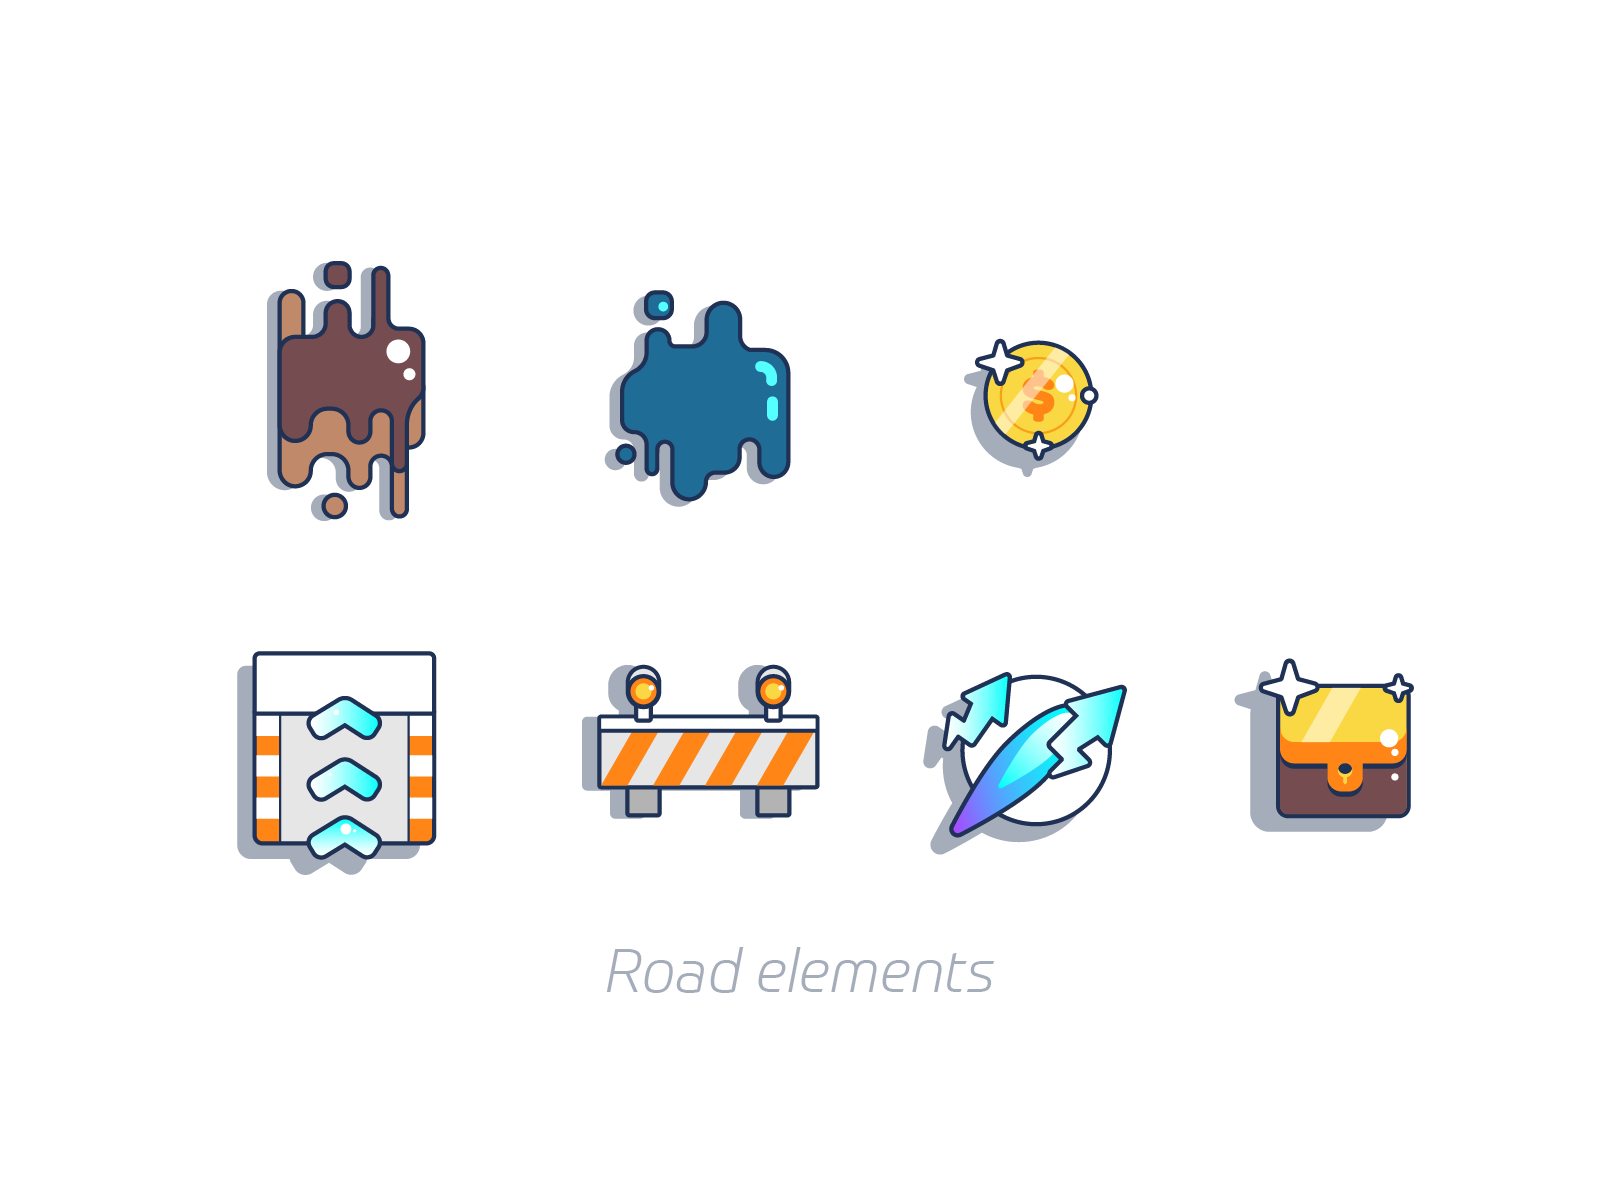 Road elements graphic design illustration